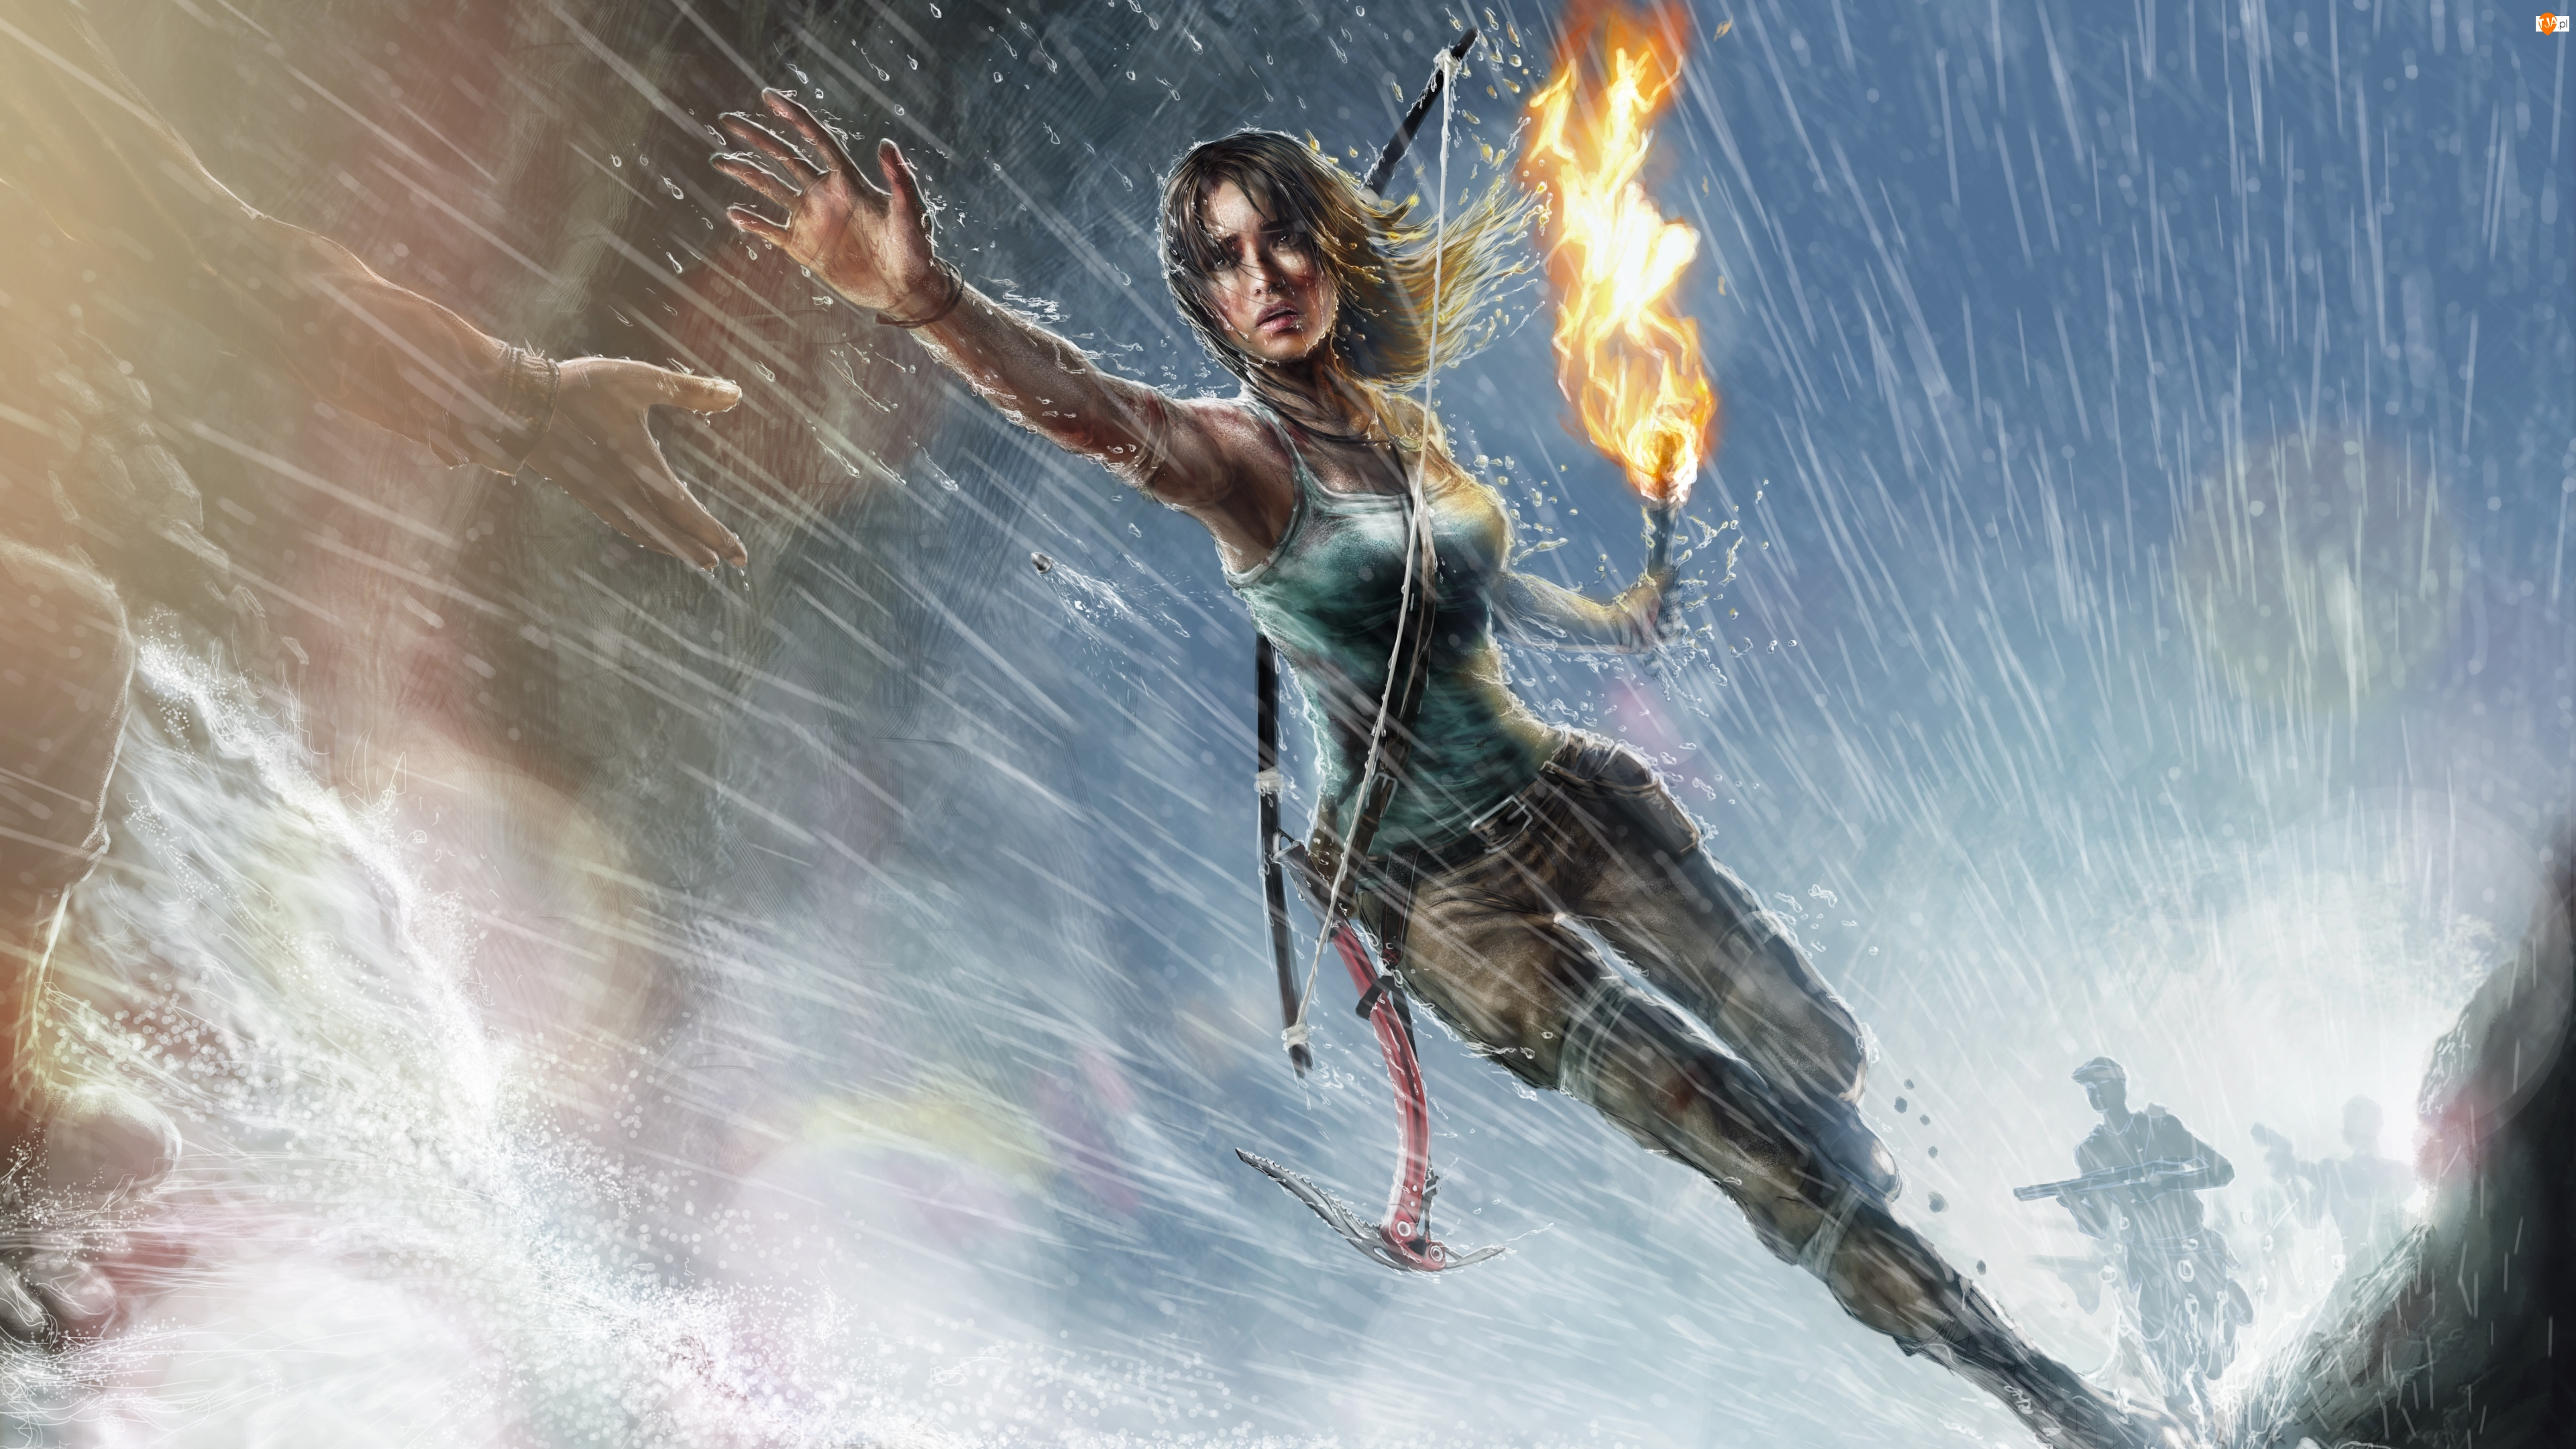 Lara Croft, Pochodnia, Gra, Łuk, Rise of the Tomb Raider, Ręka